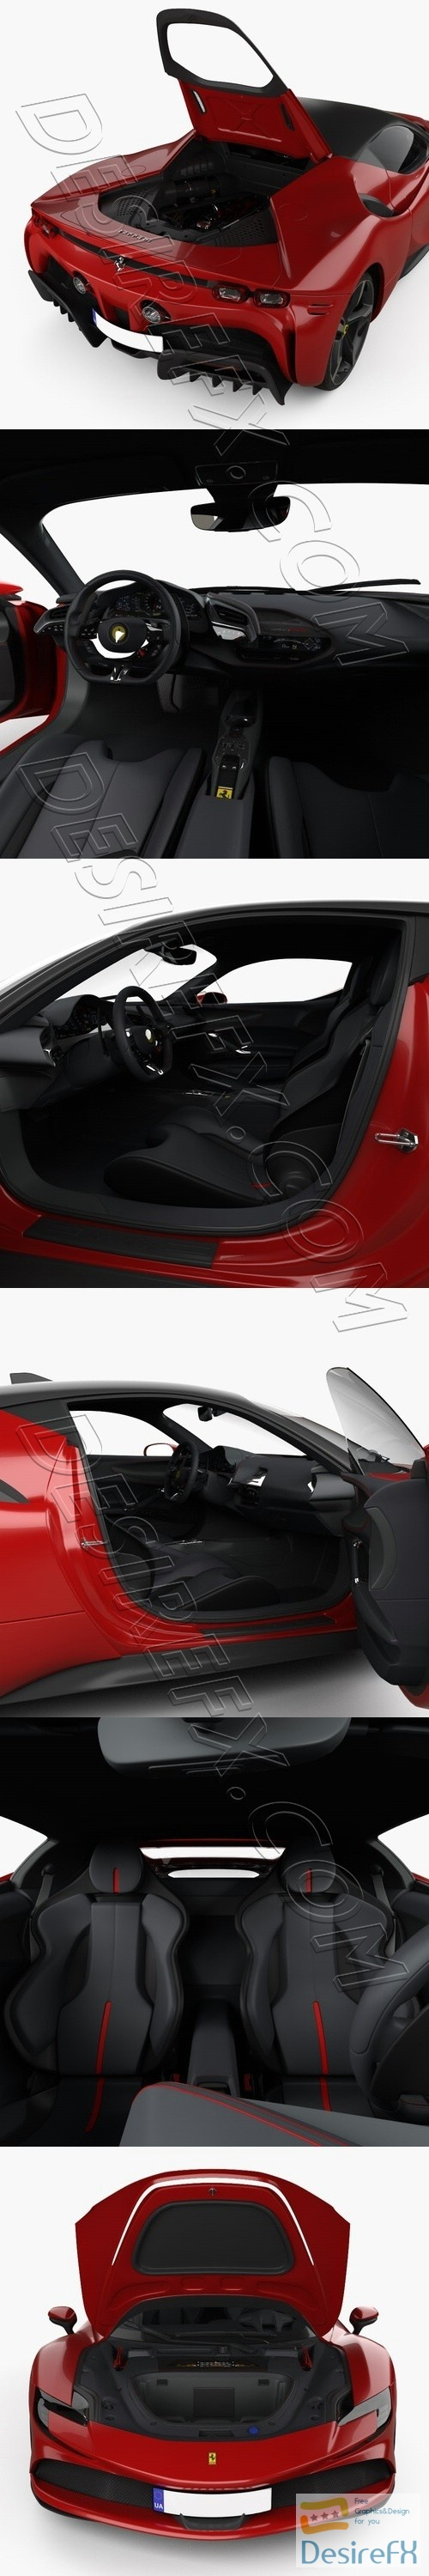 Ferrari SF90 Stradale with HQinterior and wEngine 2020 3D Model